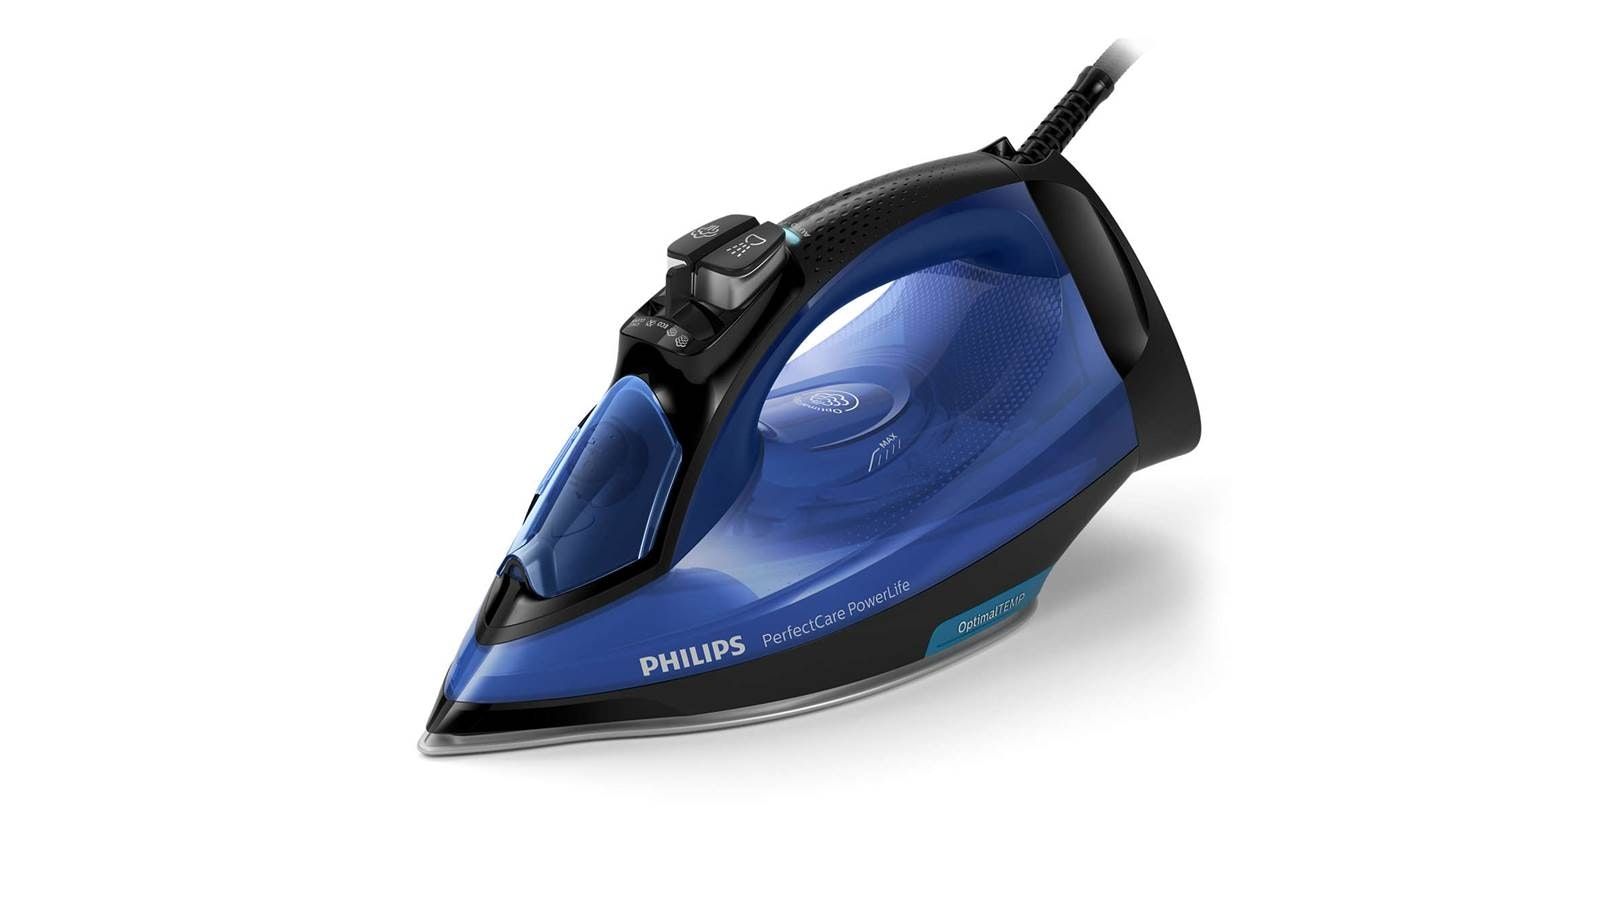 Philips Perfectcare Gc3920 Steam Iron Harvey Norman Malaysia